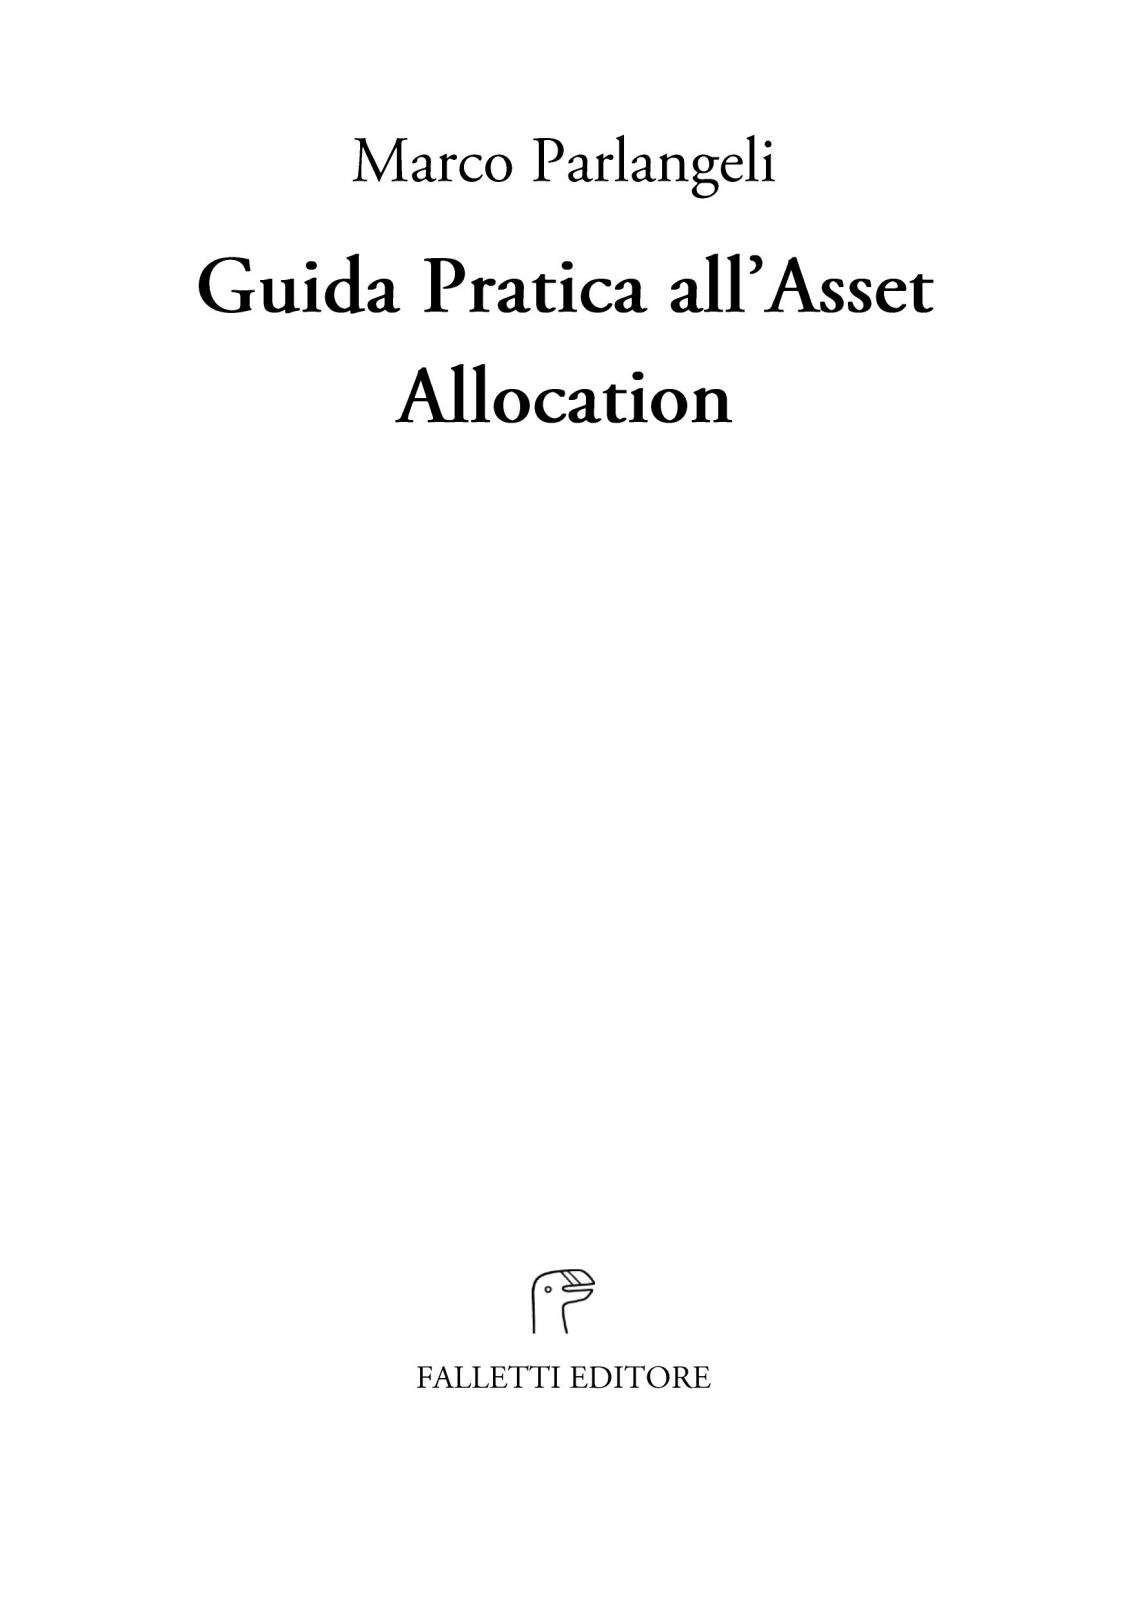 Guida Pratica all'Asset Allocation